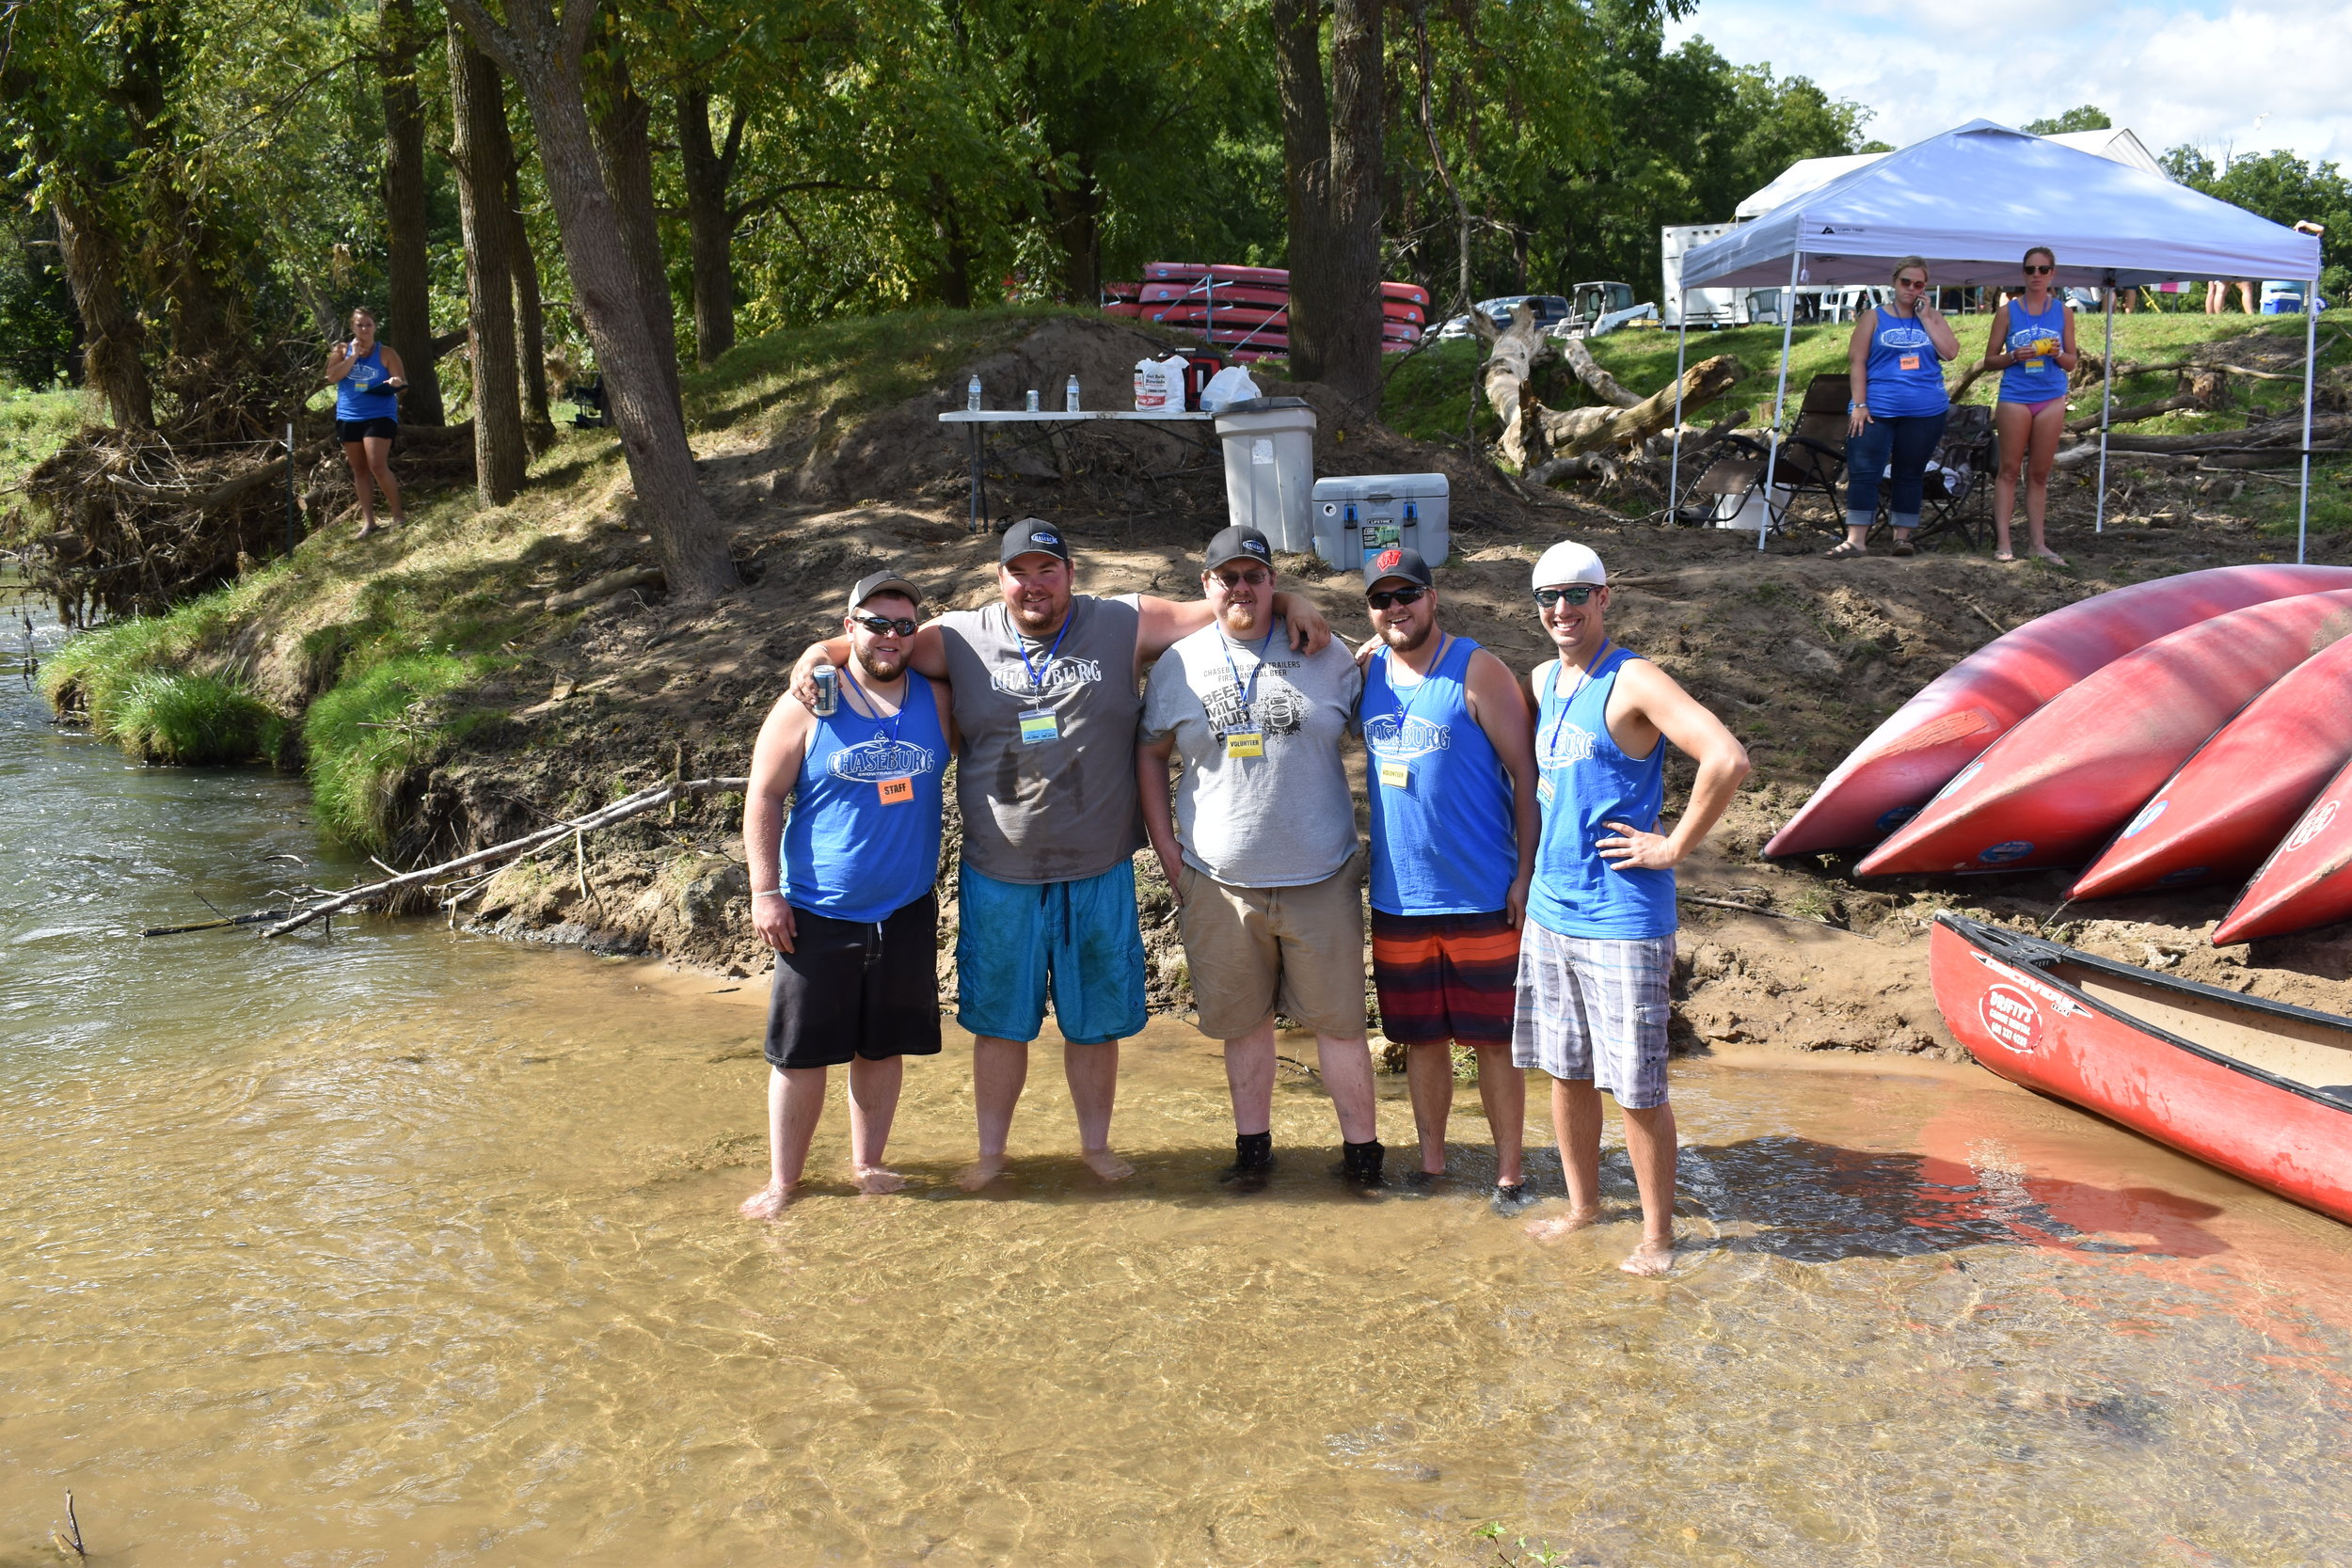 L to R- Helping launch canoers were Chaseburg Snow Trailers Mason Ostrem, Justin Helgeson, Joe Garbers, Adam Olson and Jeff Richards